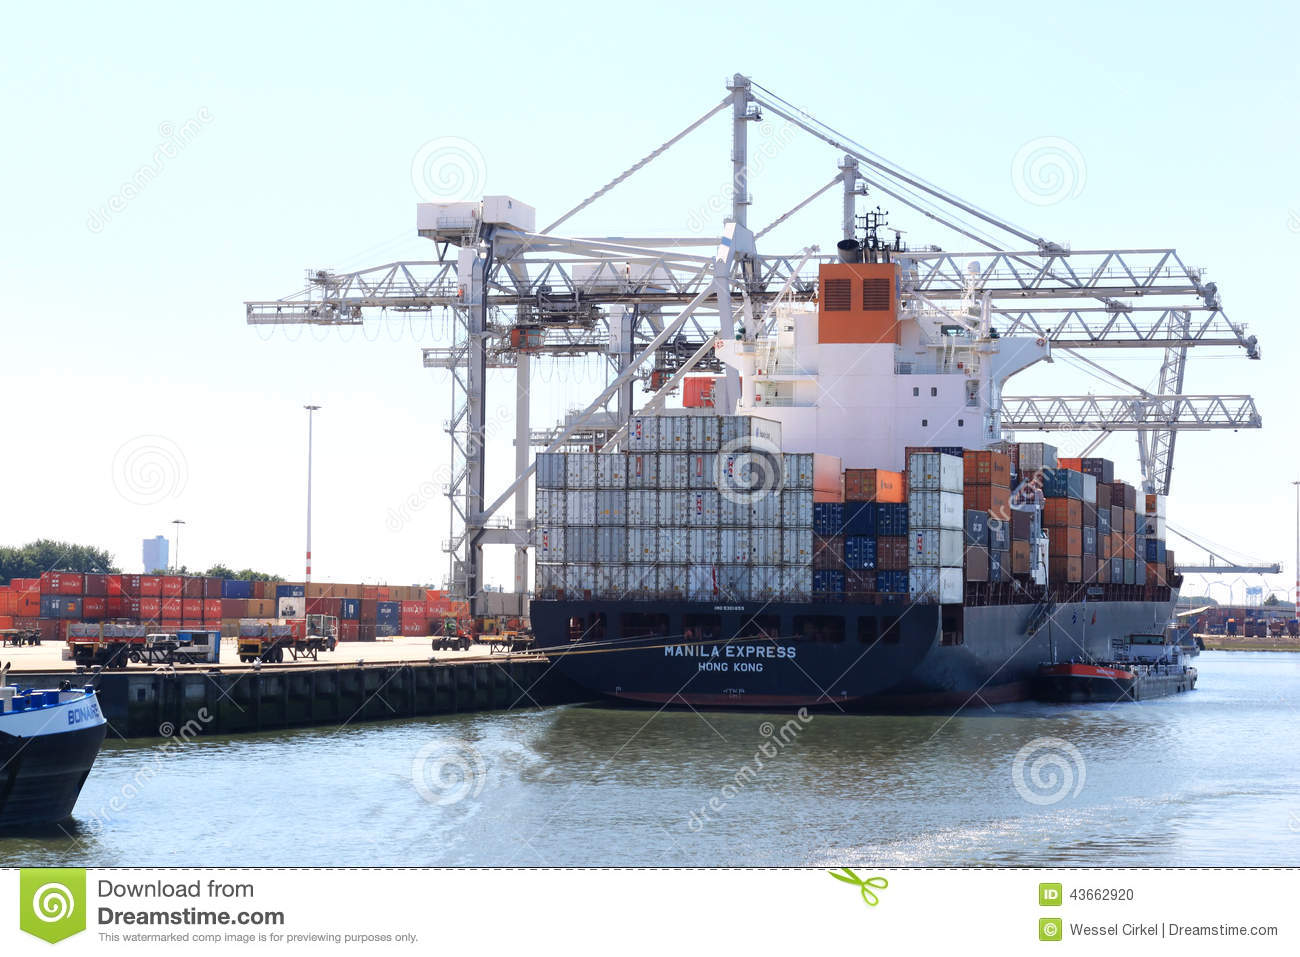 Loading a vessel in Rotterdam port, the Netherlands